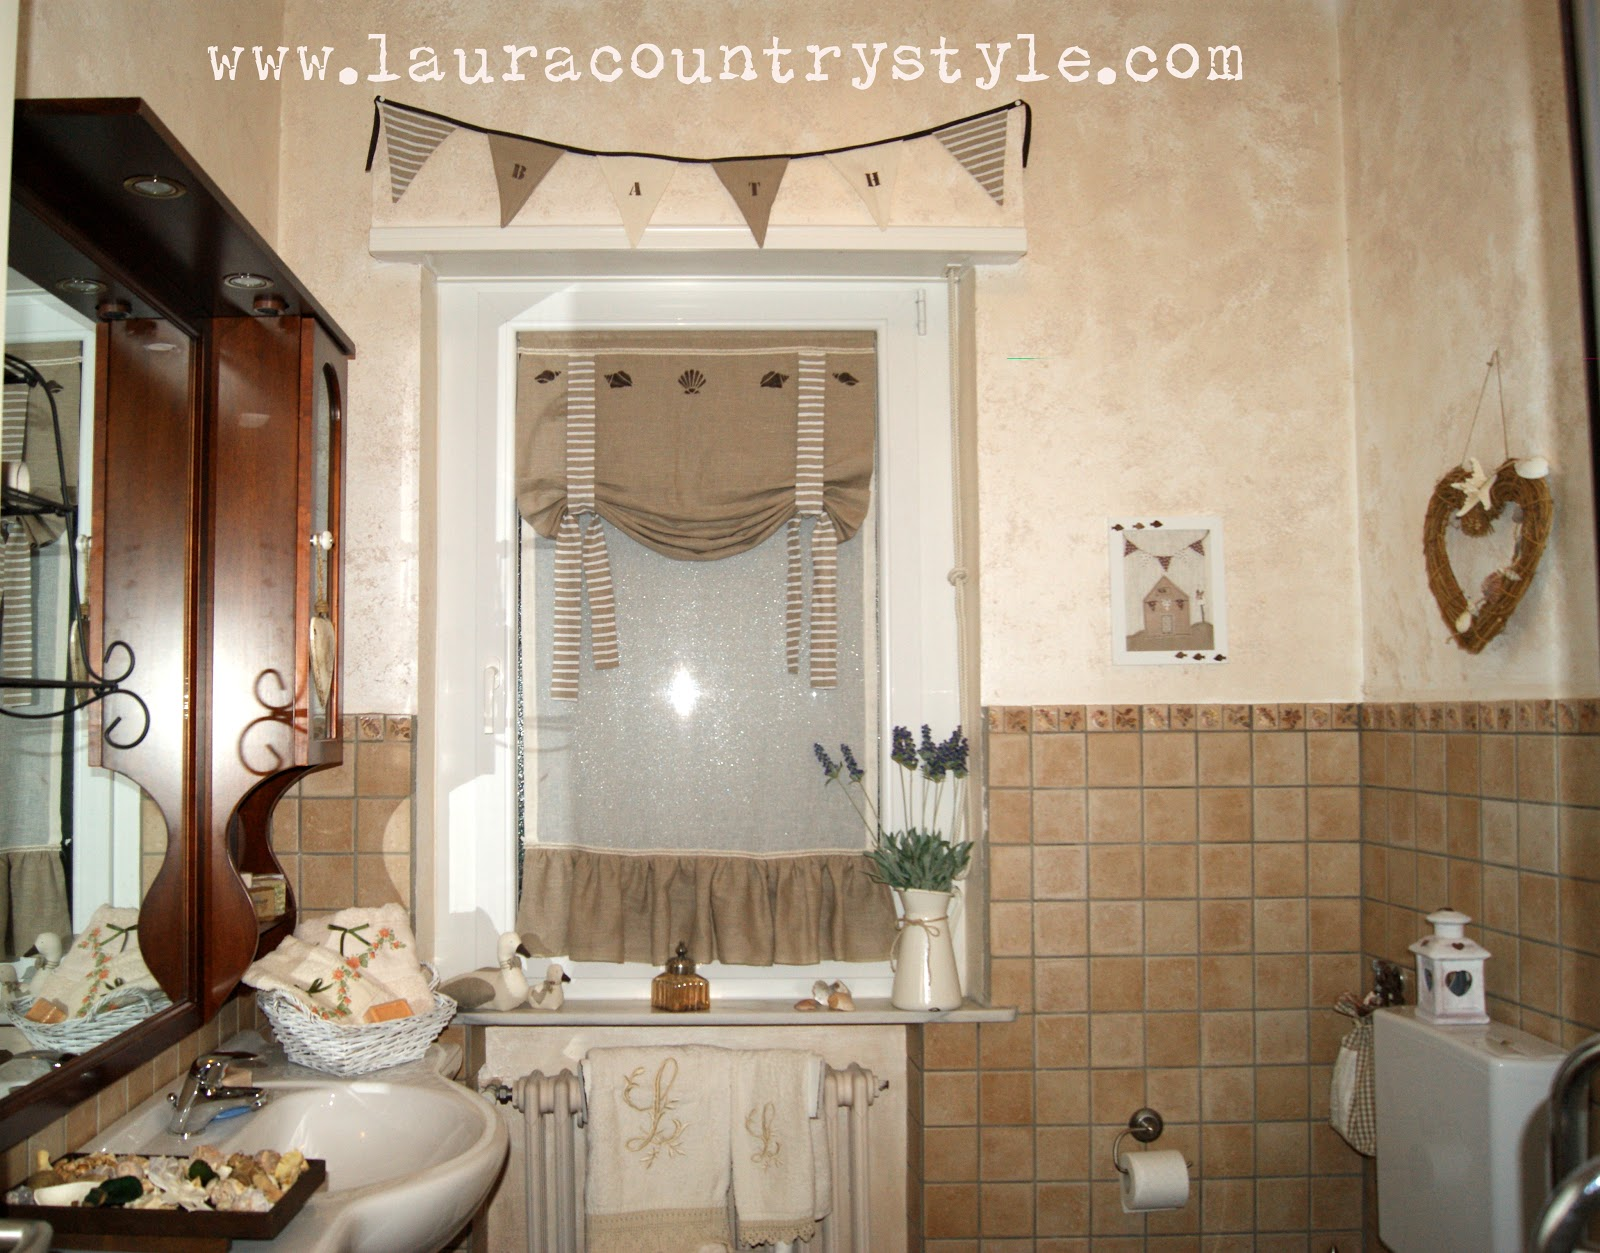 Bagni stile country ~ avienix.com for .